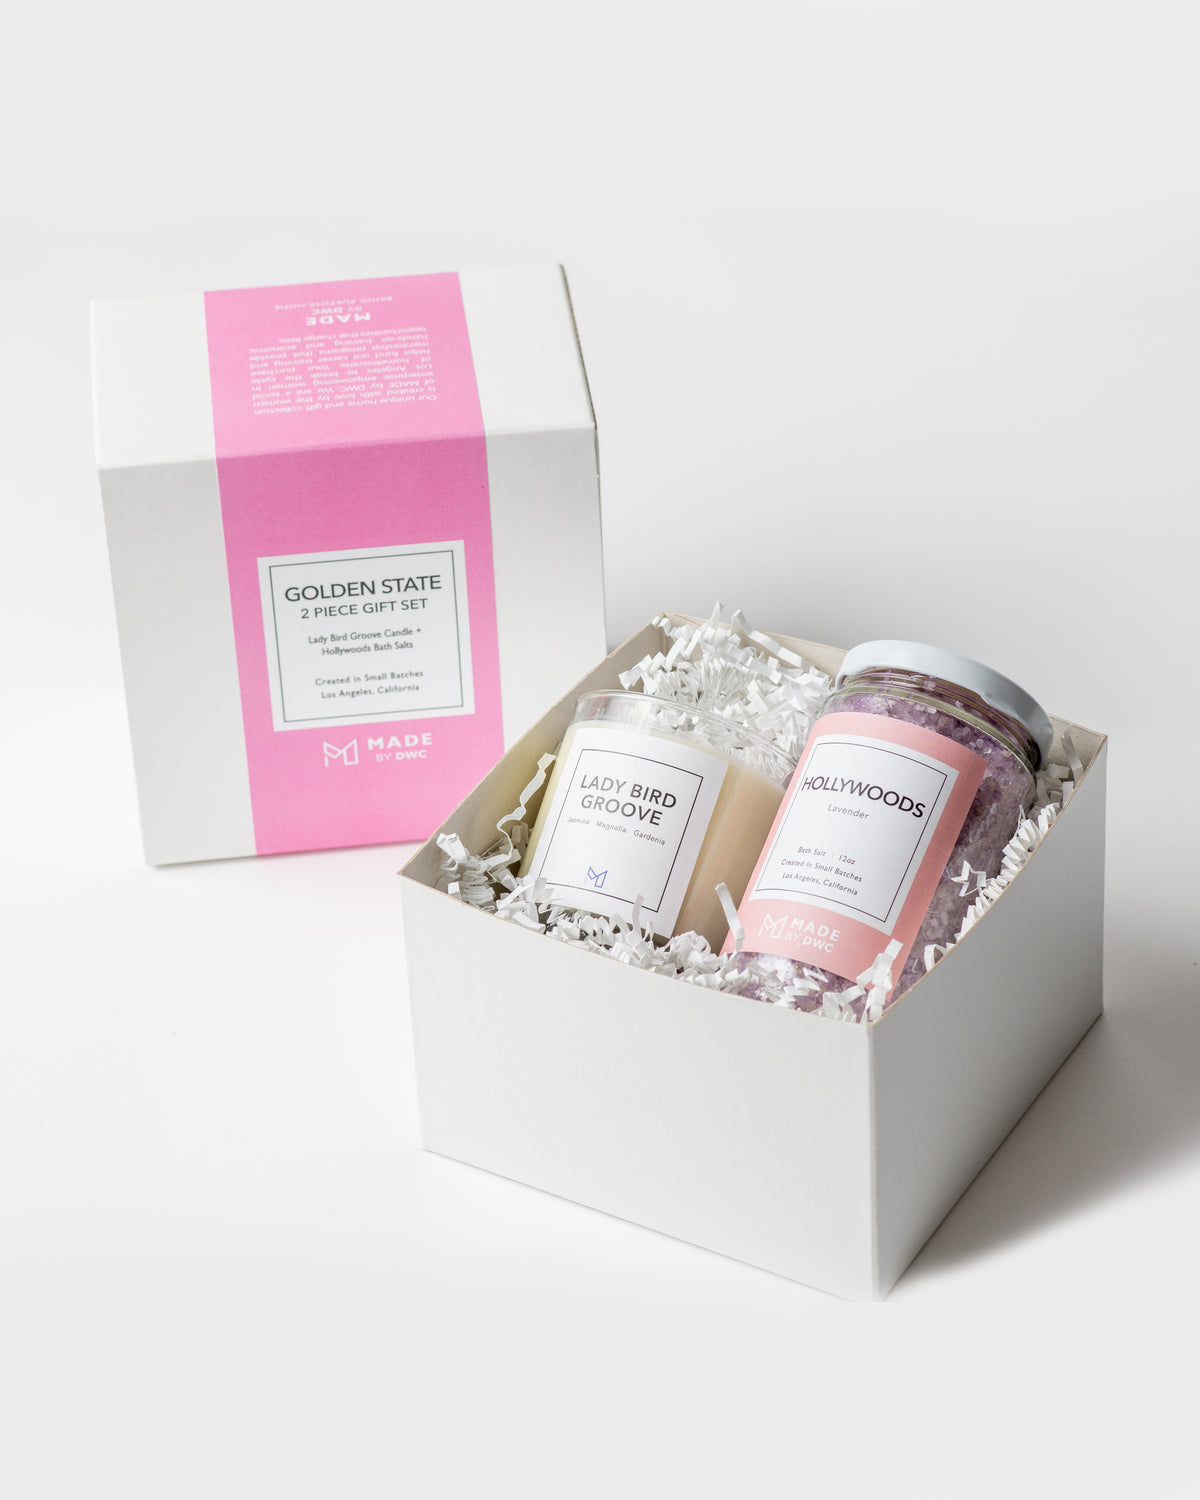 Golden State Gift Set - Lady Bird Groove Candle & Bath Salts